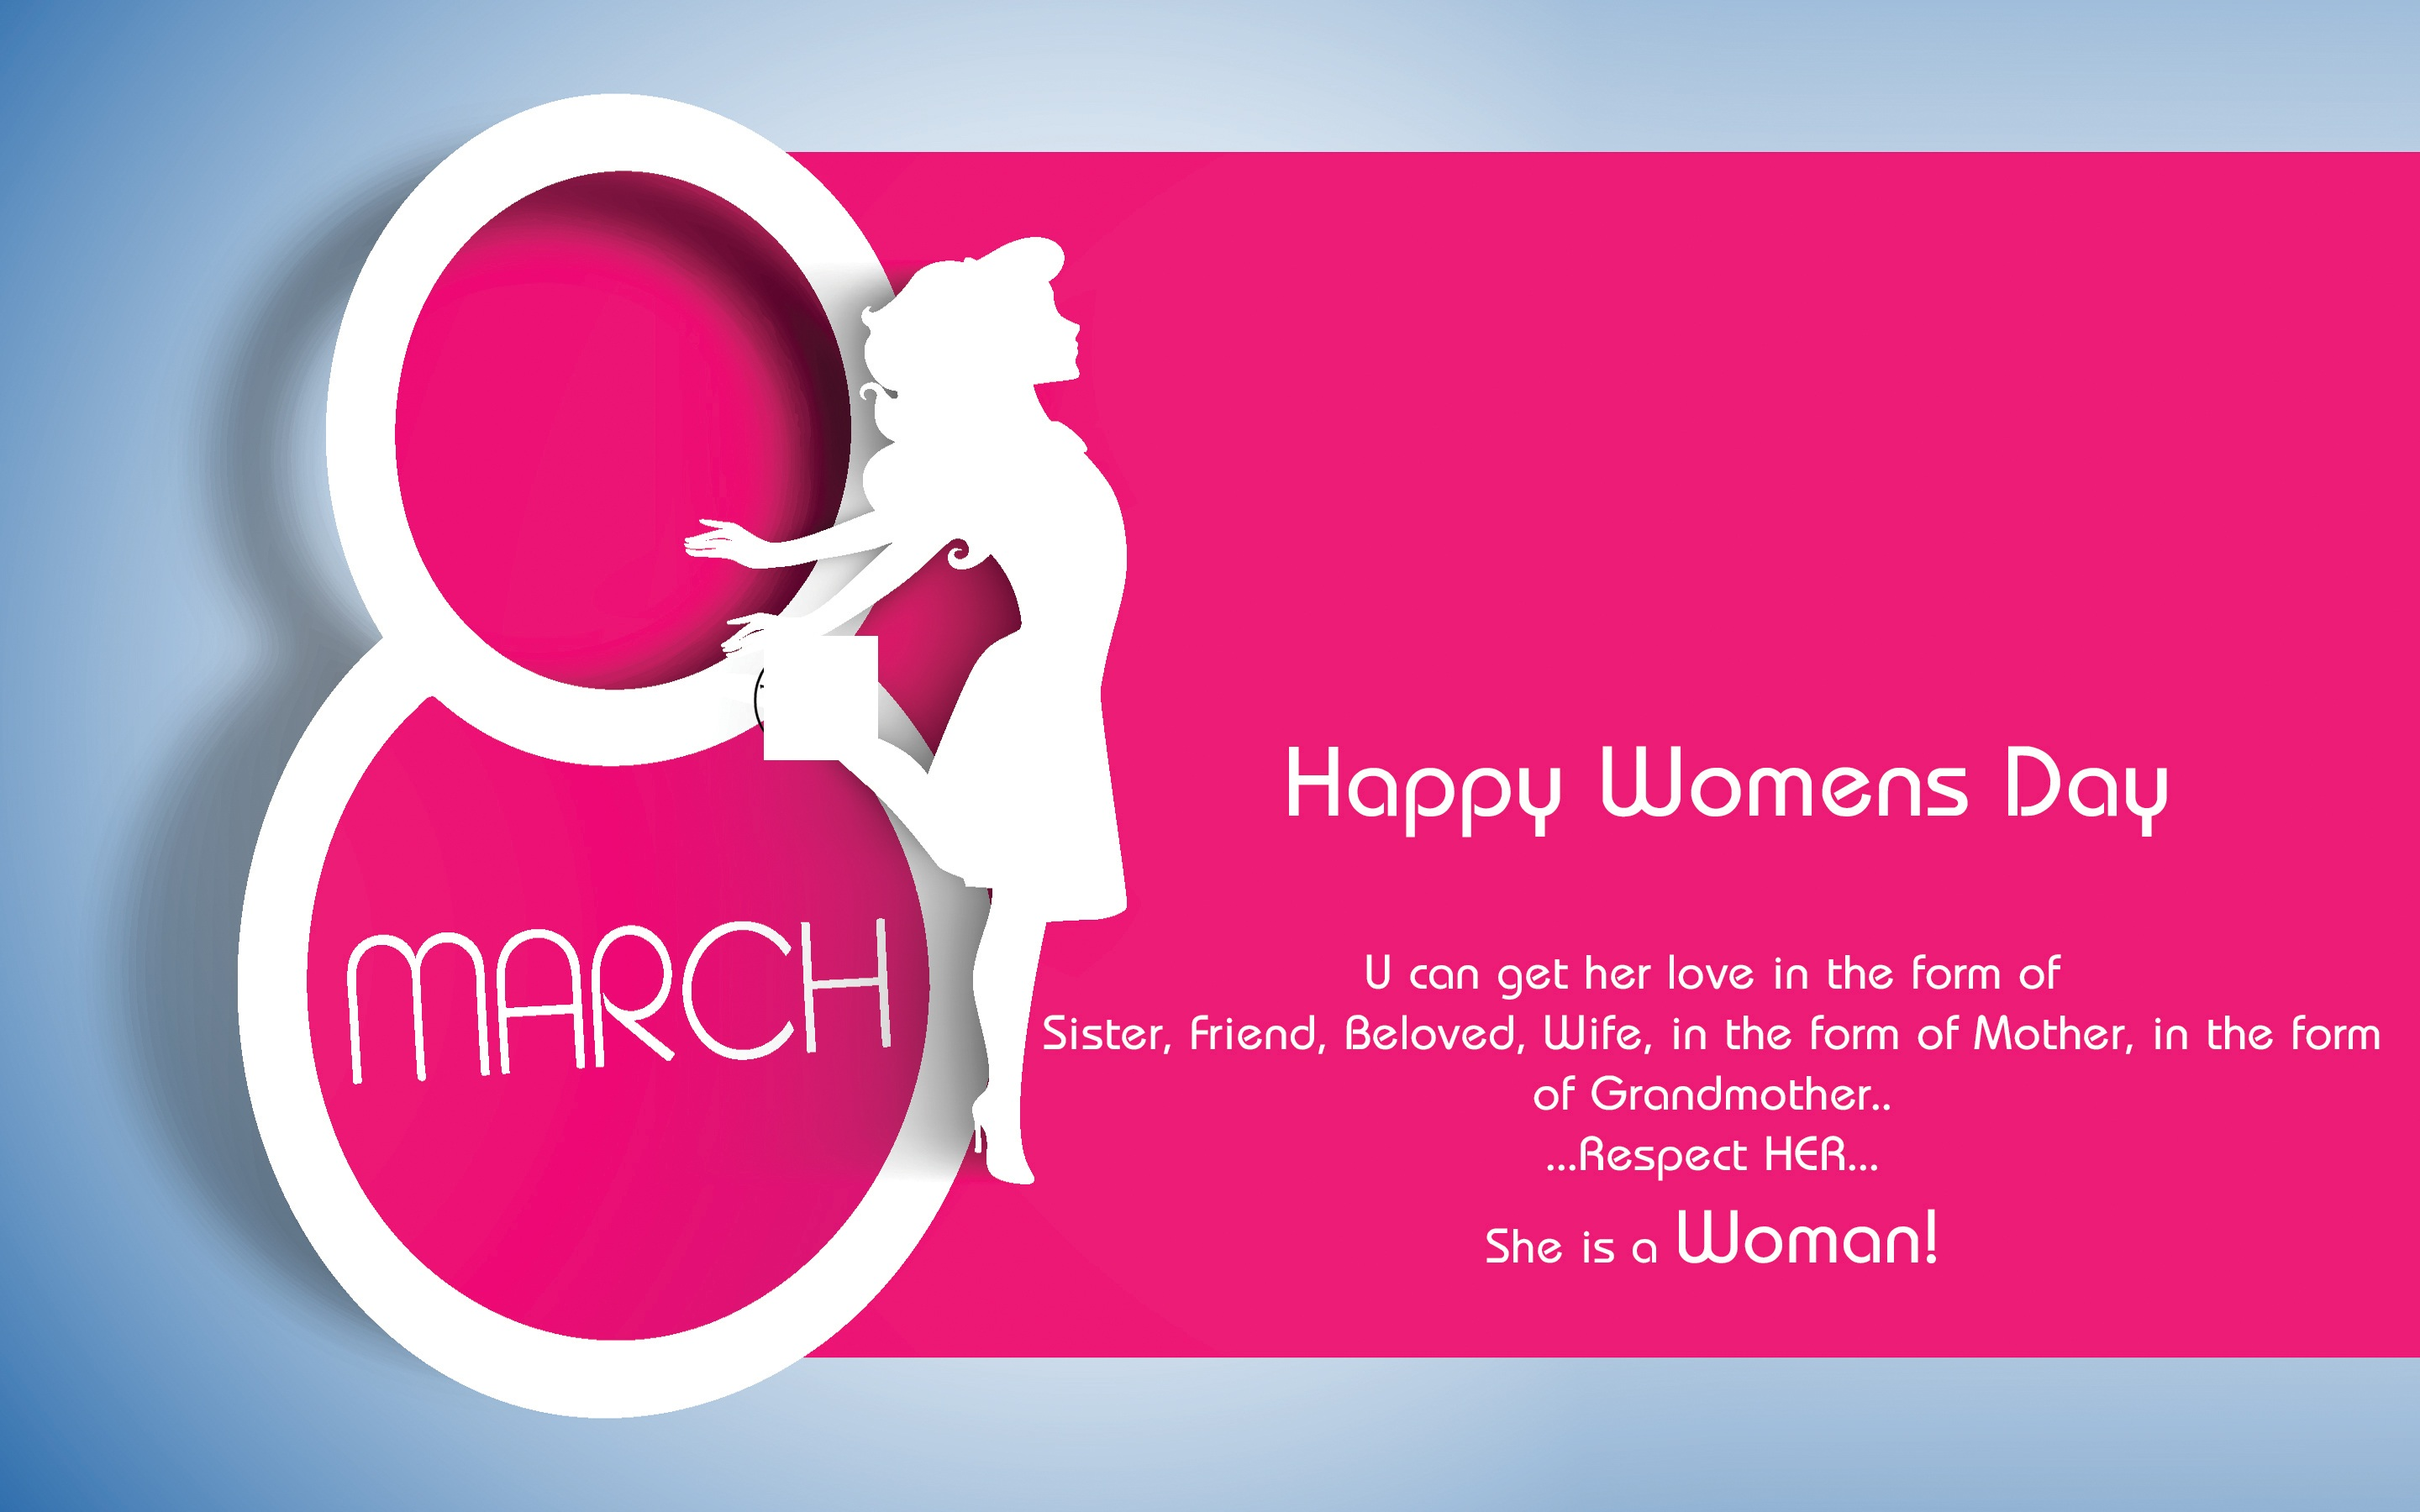 Happy Womens Day Messages Photo